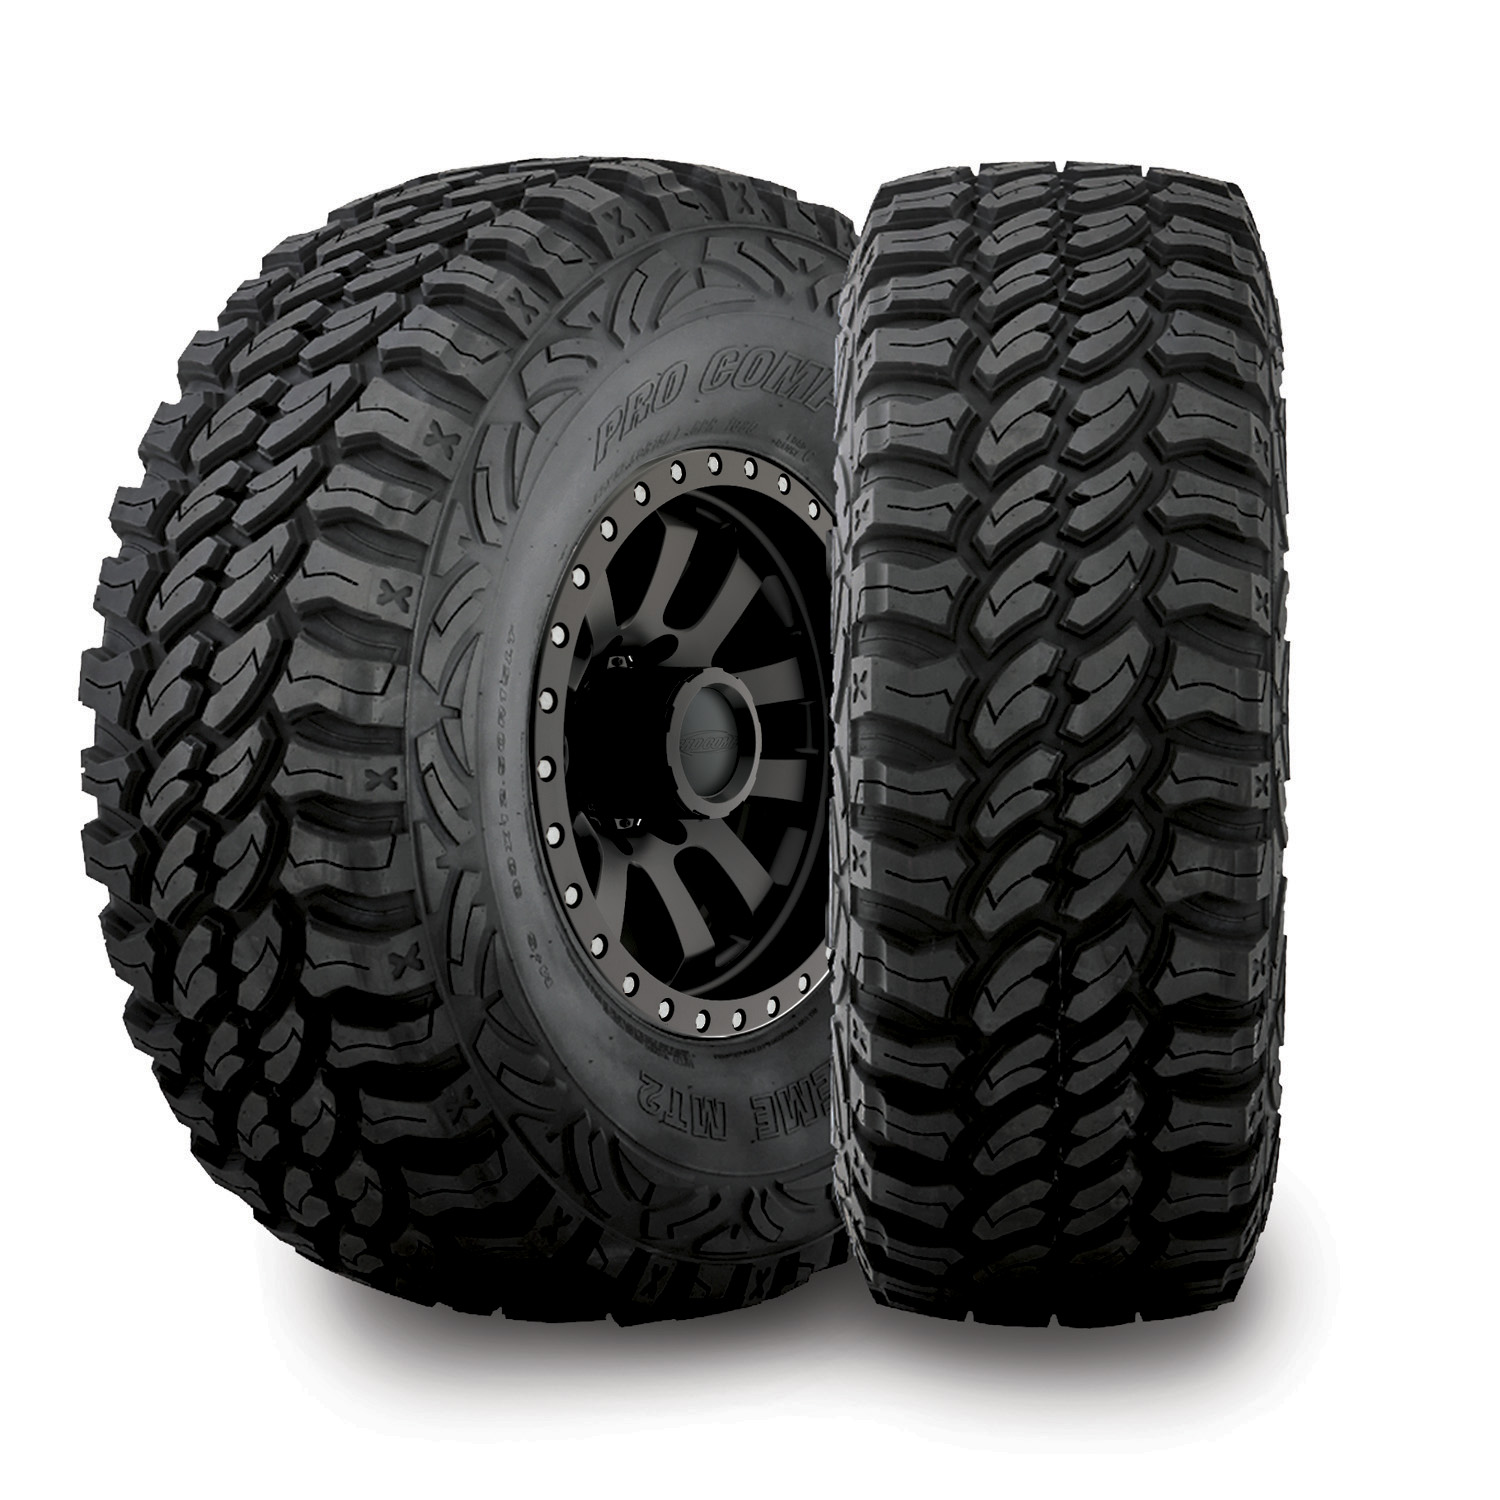 used off road tires used tires houston. Black Bedroom Furniture Sets. Home Design Ideas